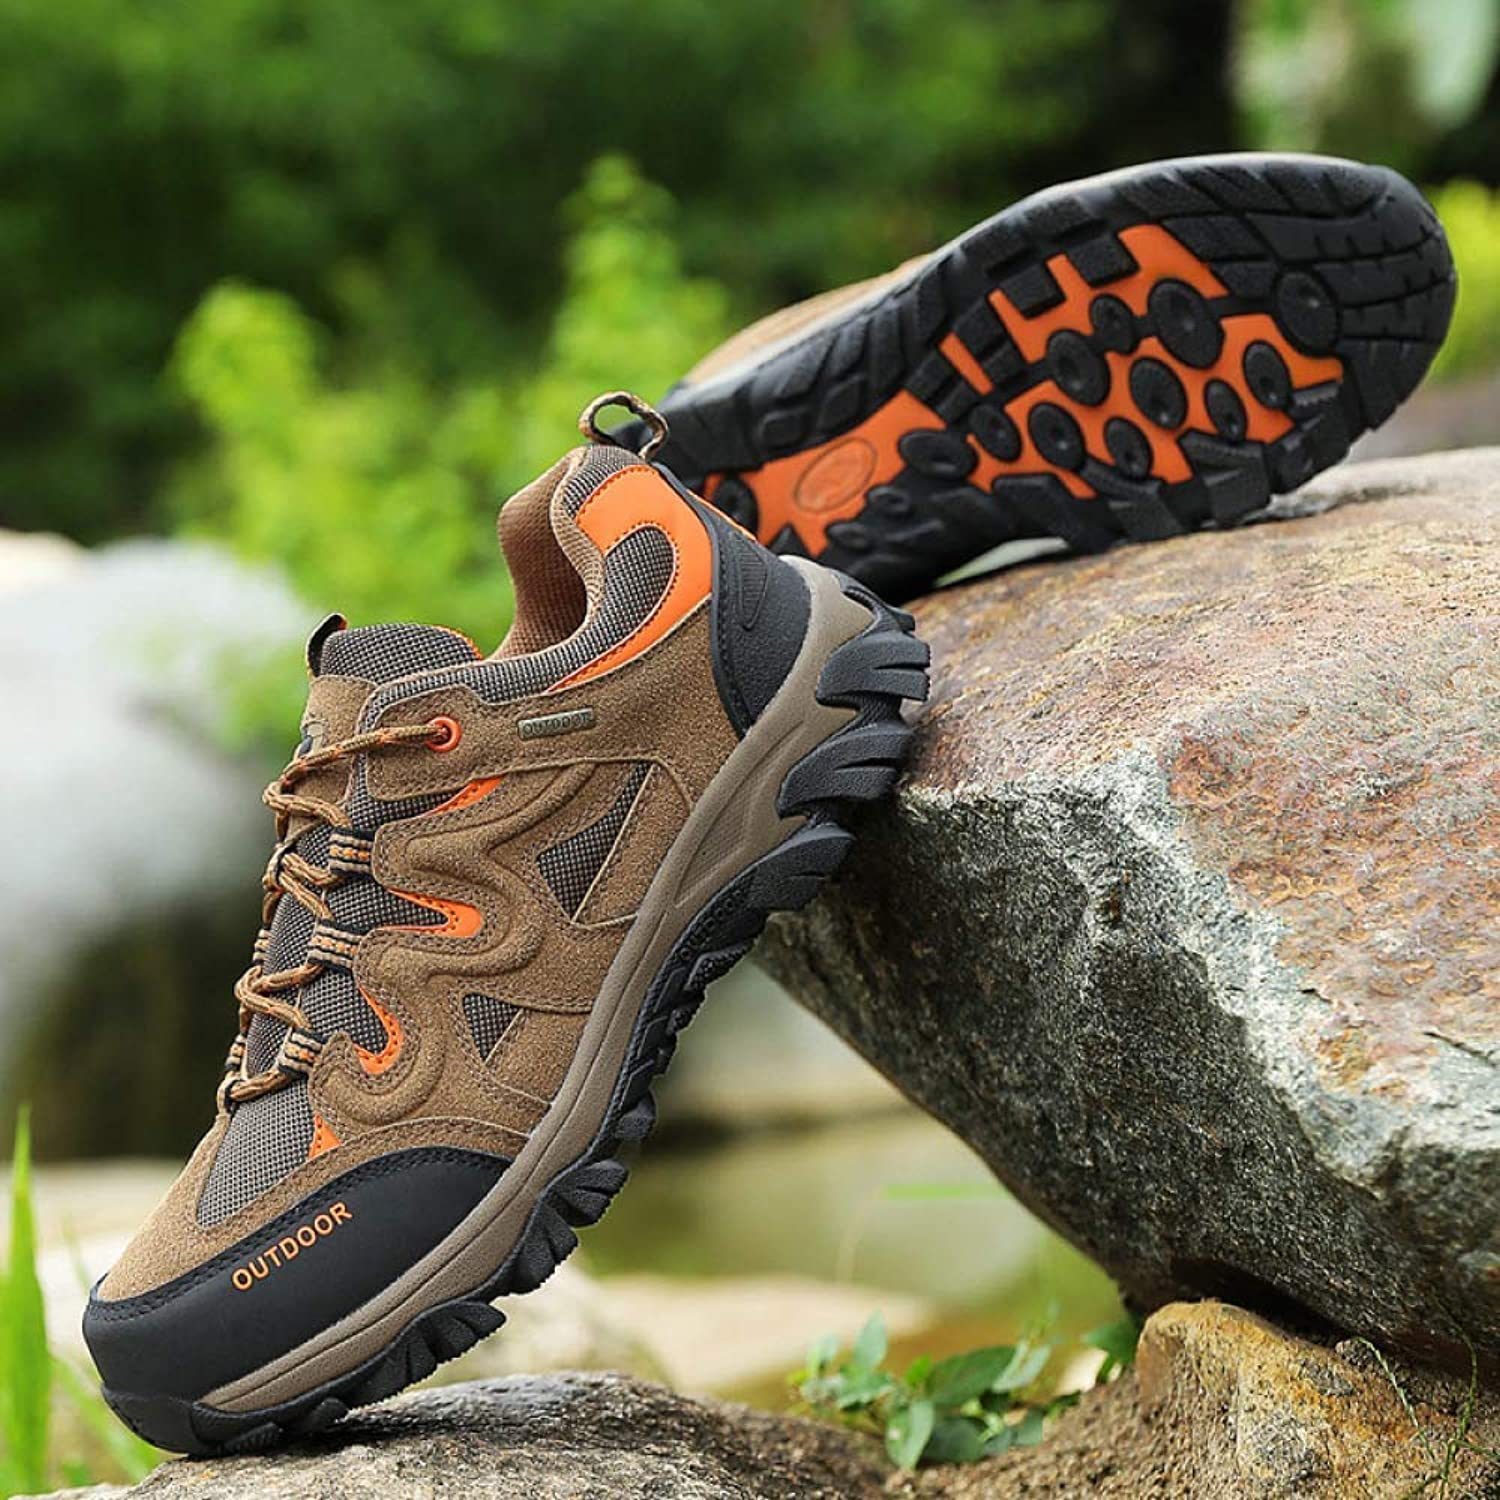 Haiyao Summer Leather Outdoor Hiking, Large Size Sneakers, Walking